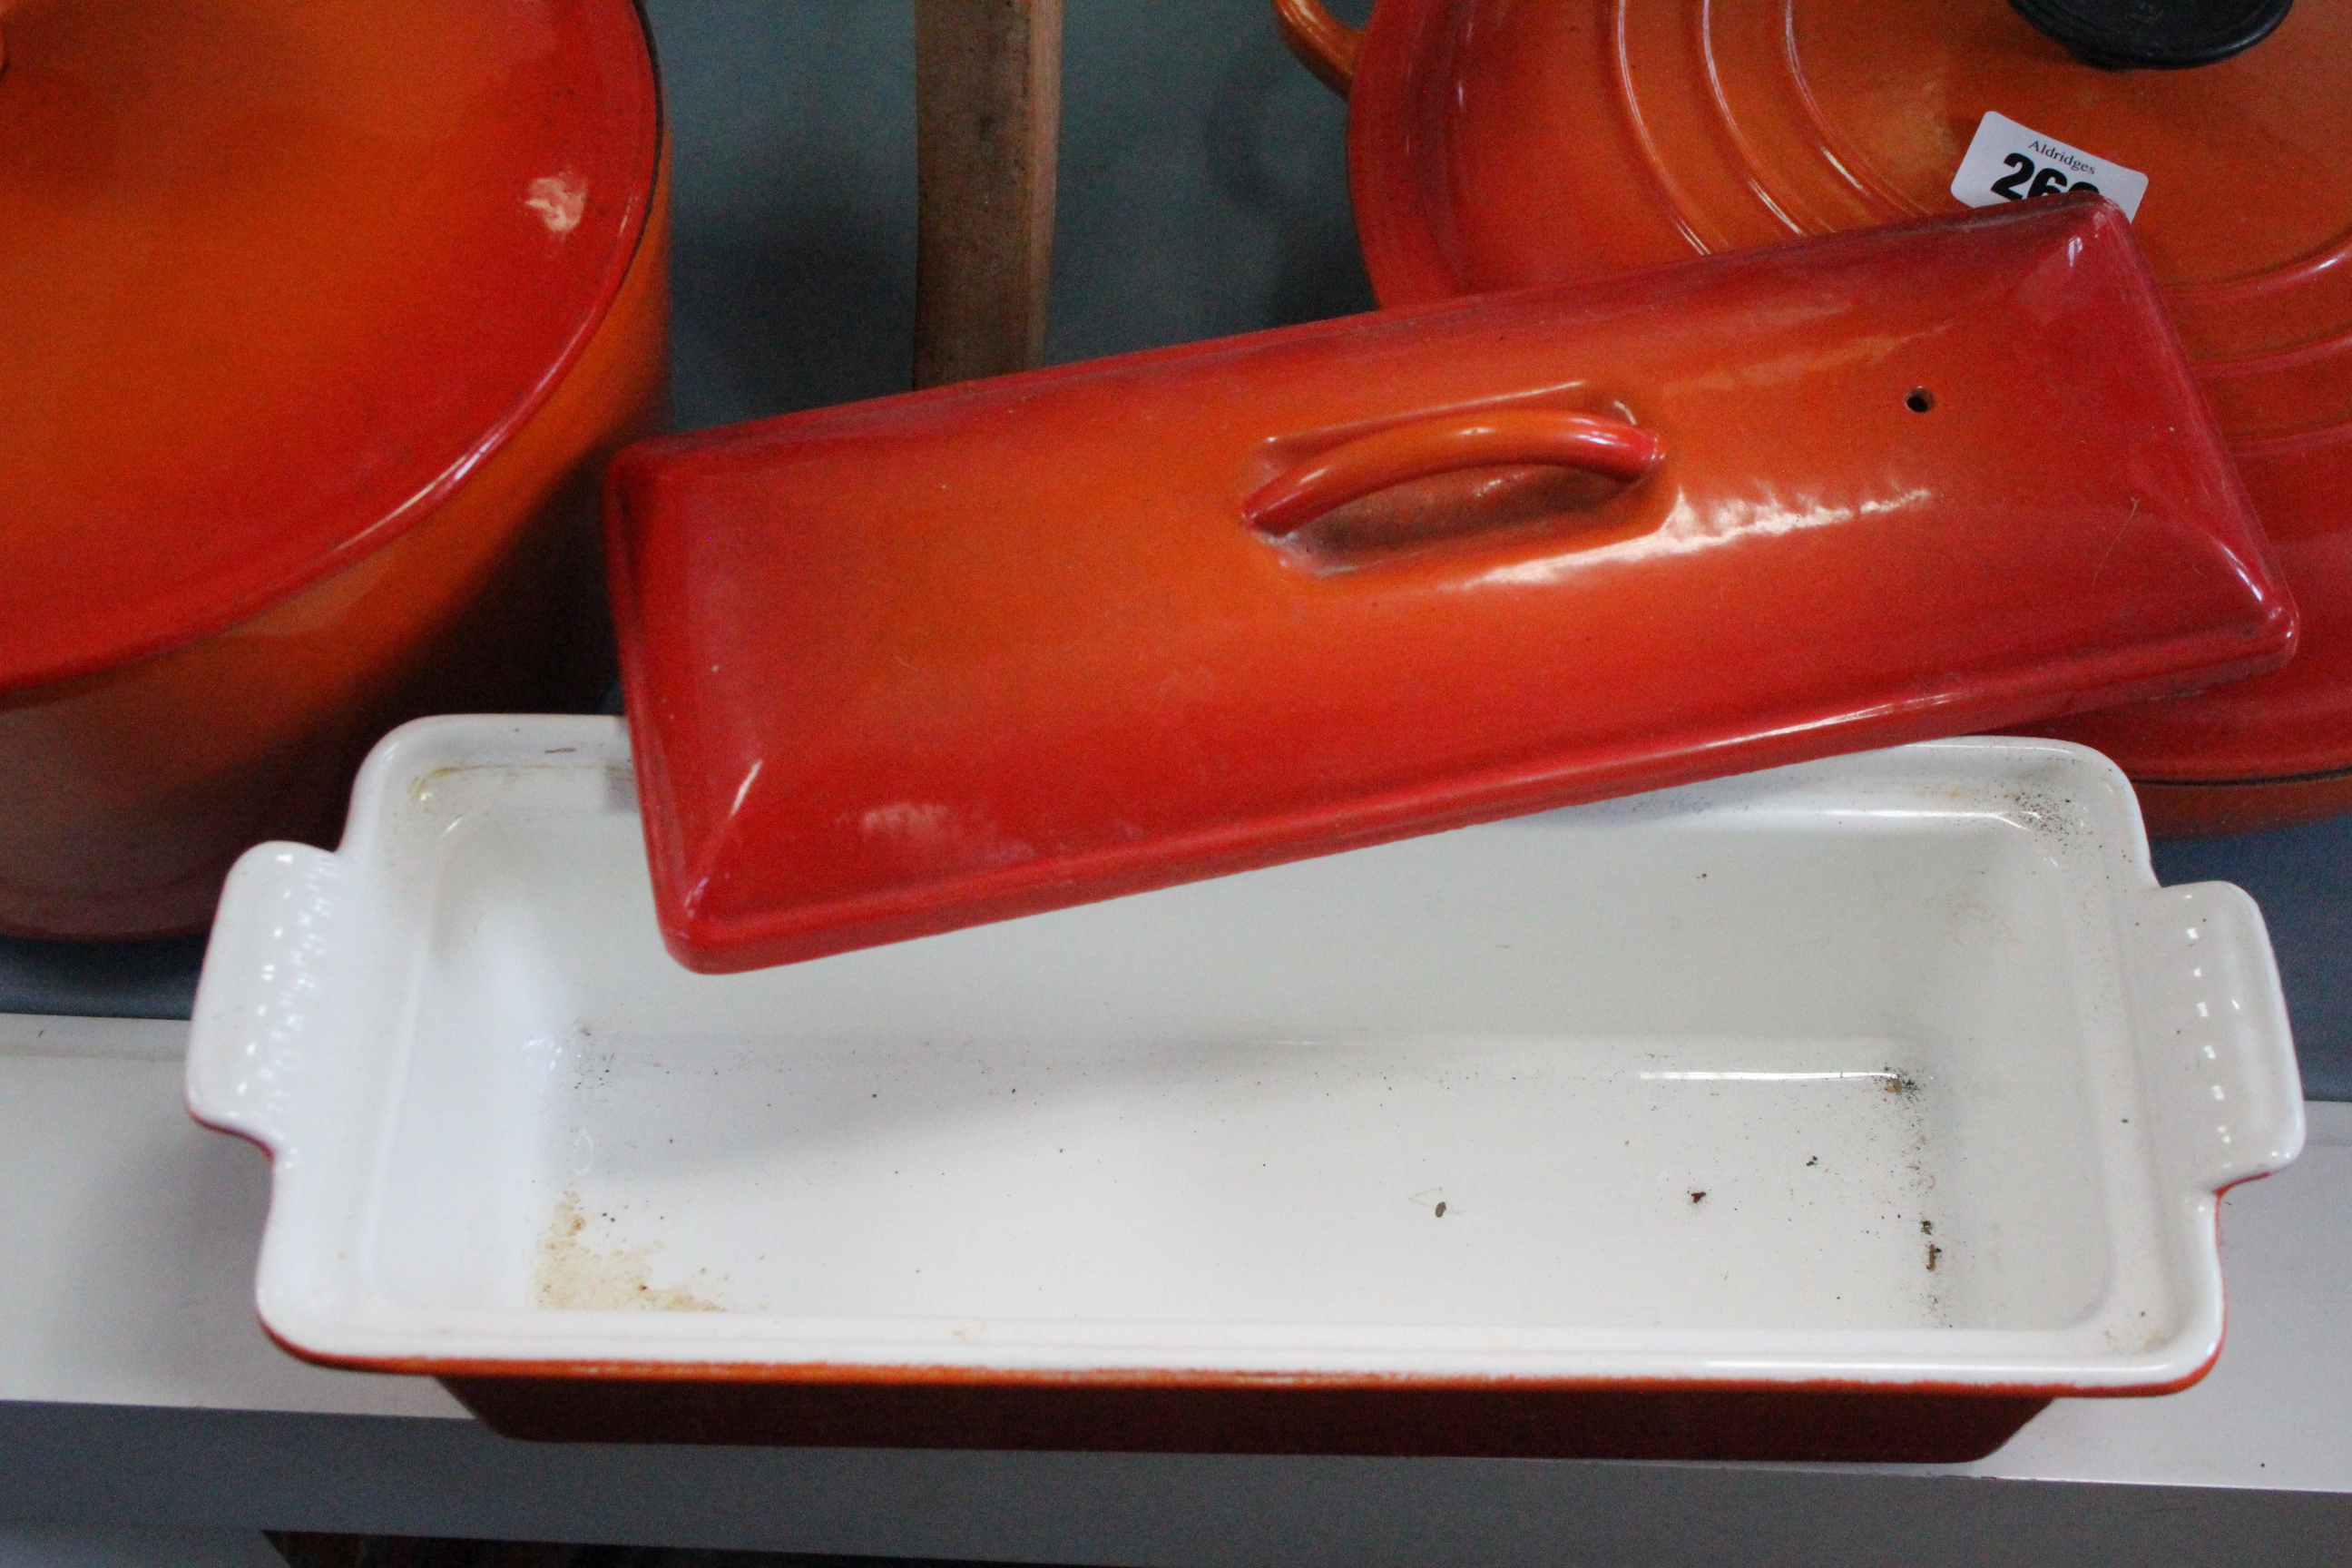 Lot 260 - A Le Creuset orange enamelled casserole dish; an aluminium fish kettle; three pestles; two